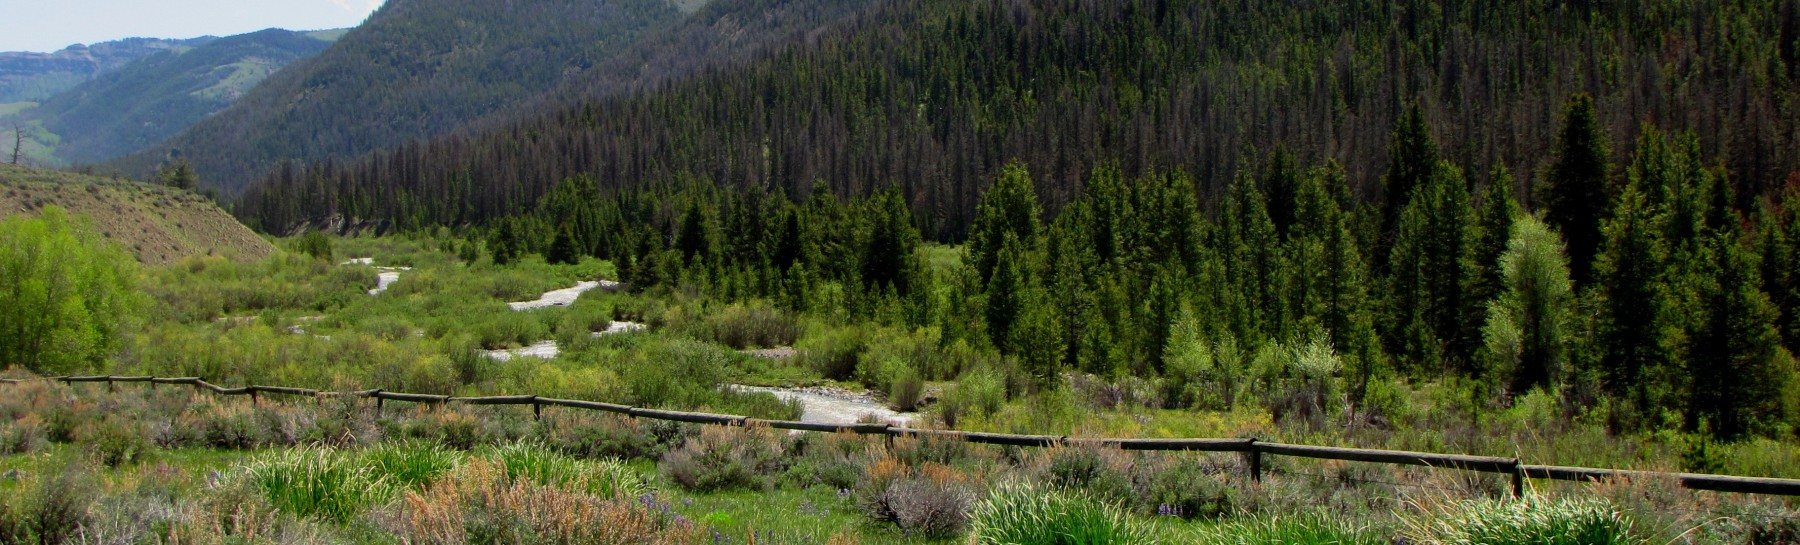 Wood River Valley 6-26-11